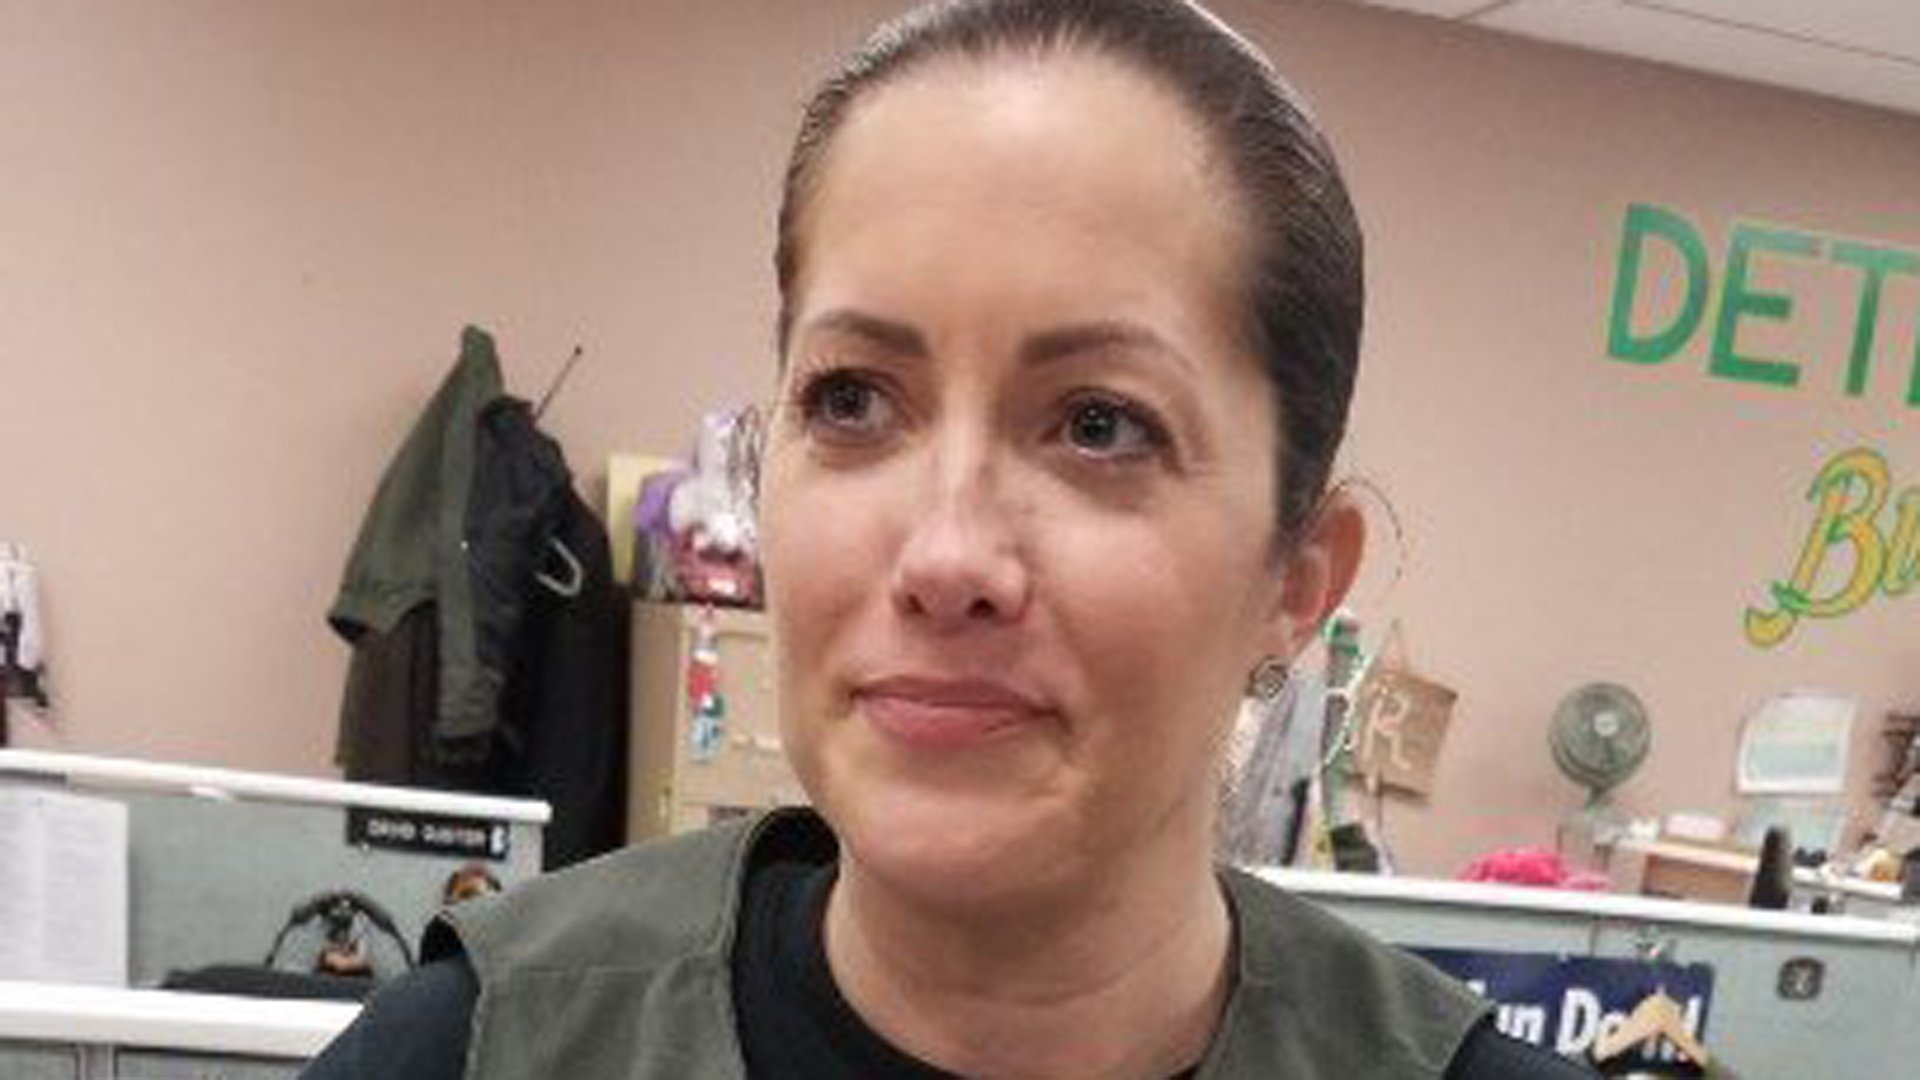 Detective Amber Leist is seen in a photo released by the Los Angeles County Sheriff's Department on Jan. 13, 2020.